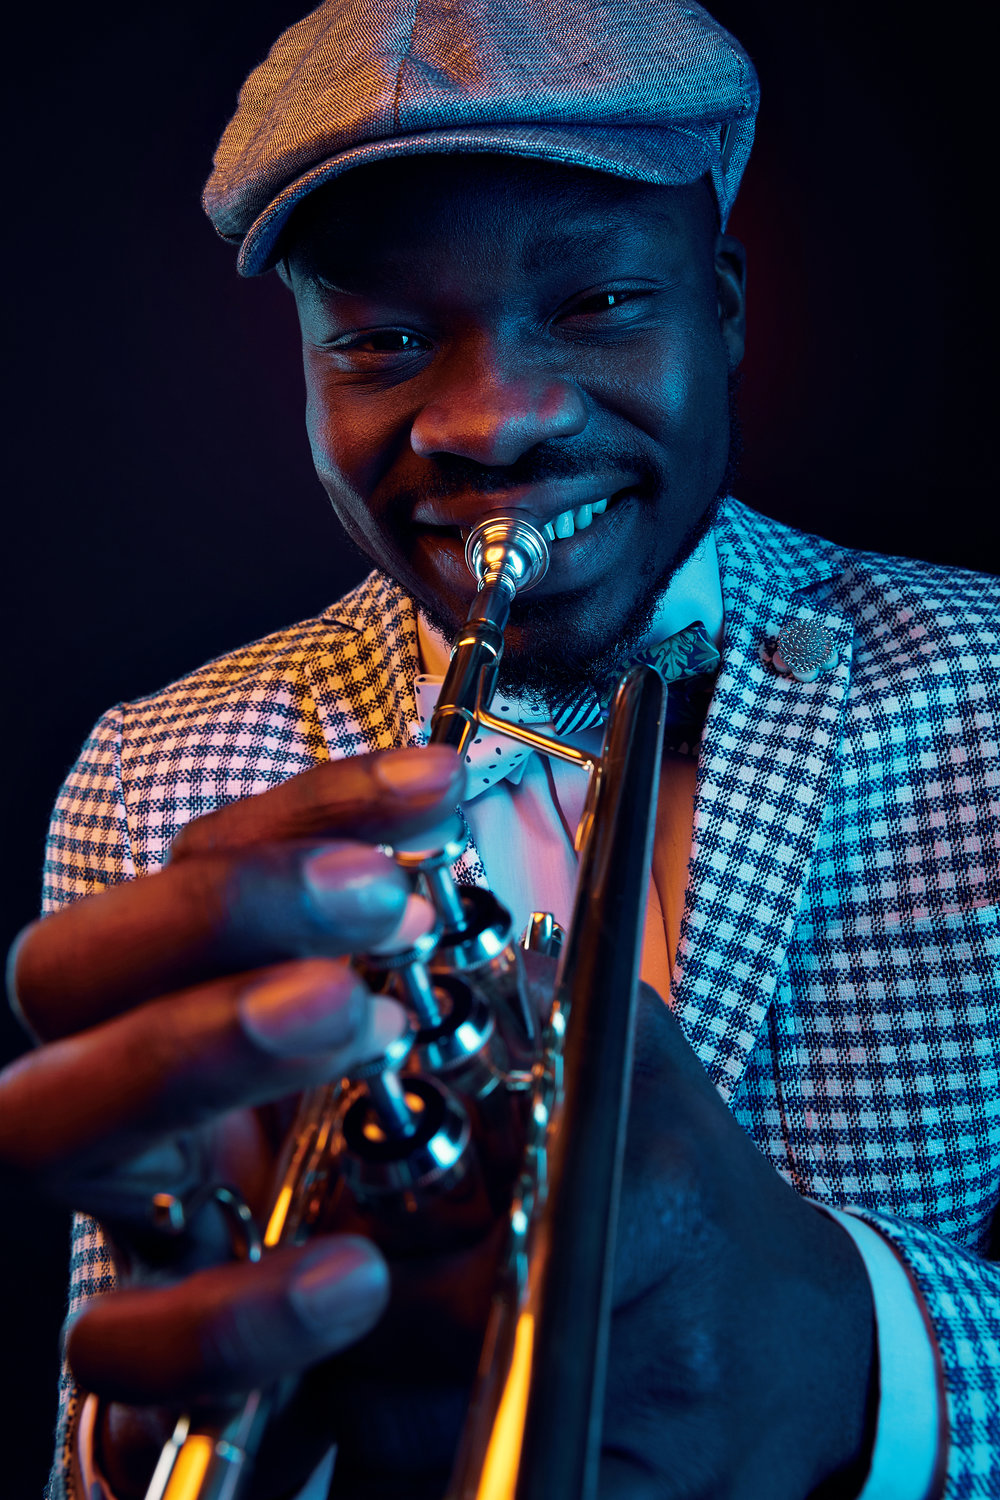 Neon studio portrait of handsome smiling black man in plaid jacket and vintage cap with trumpet in his hands. Orange and blue light